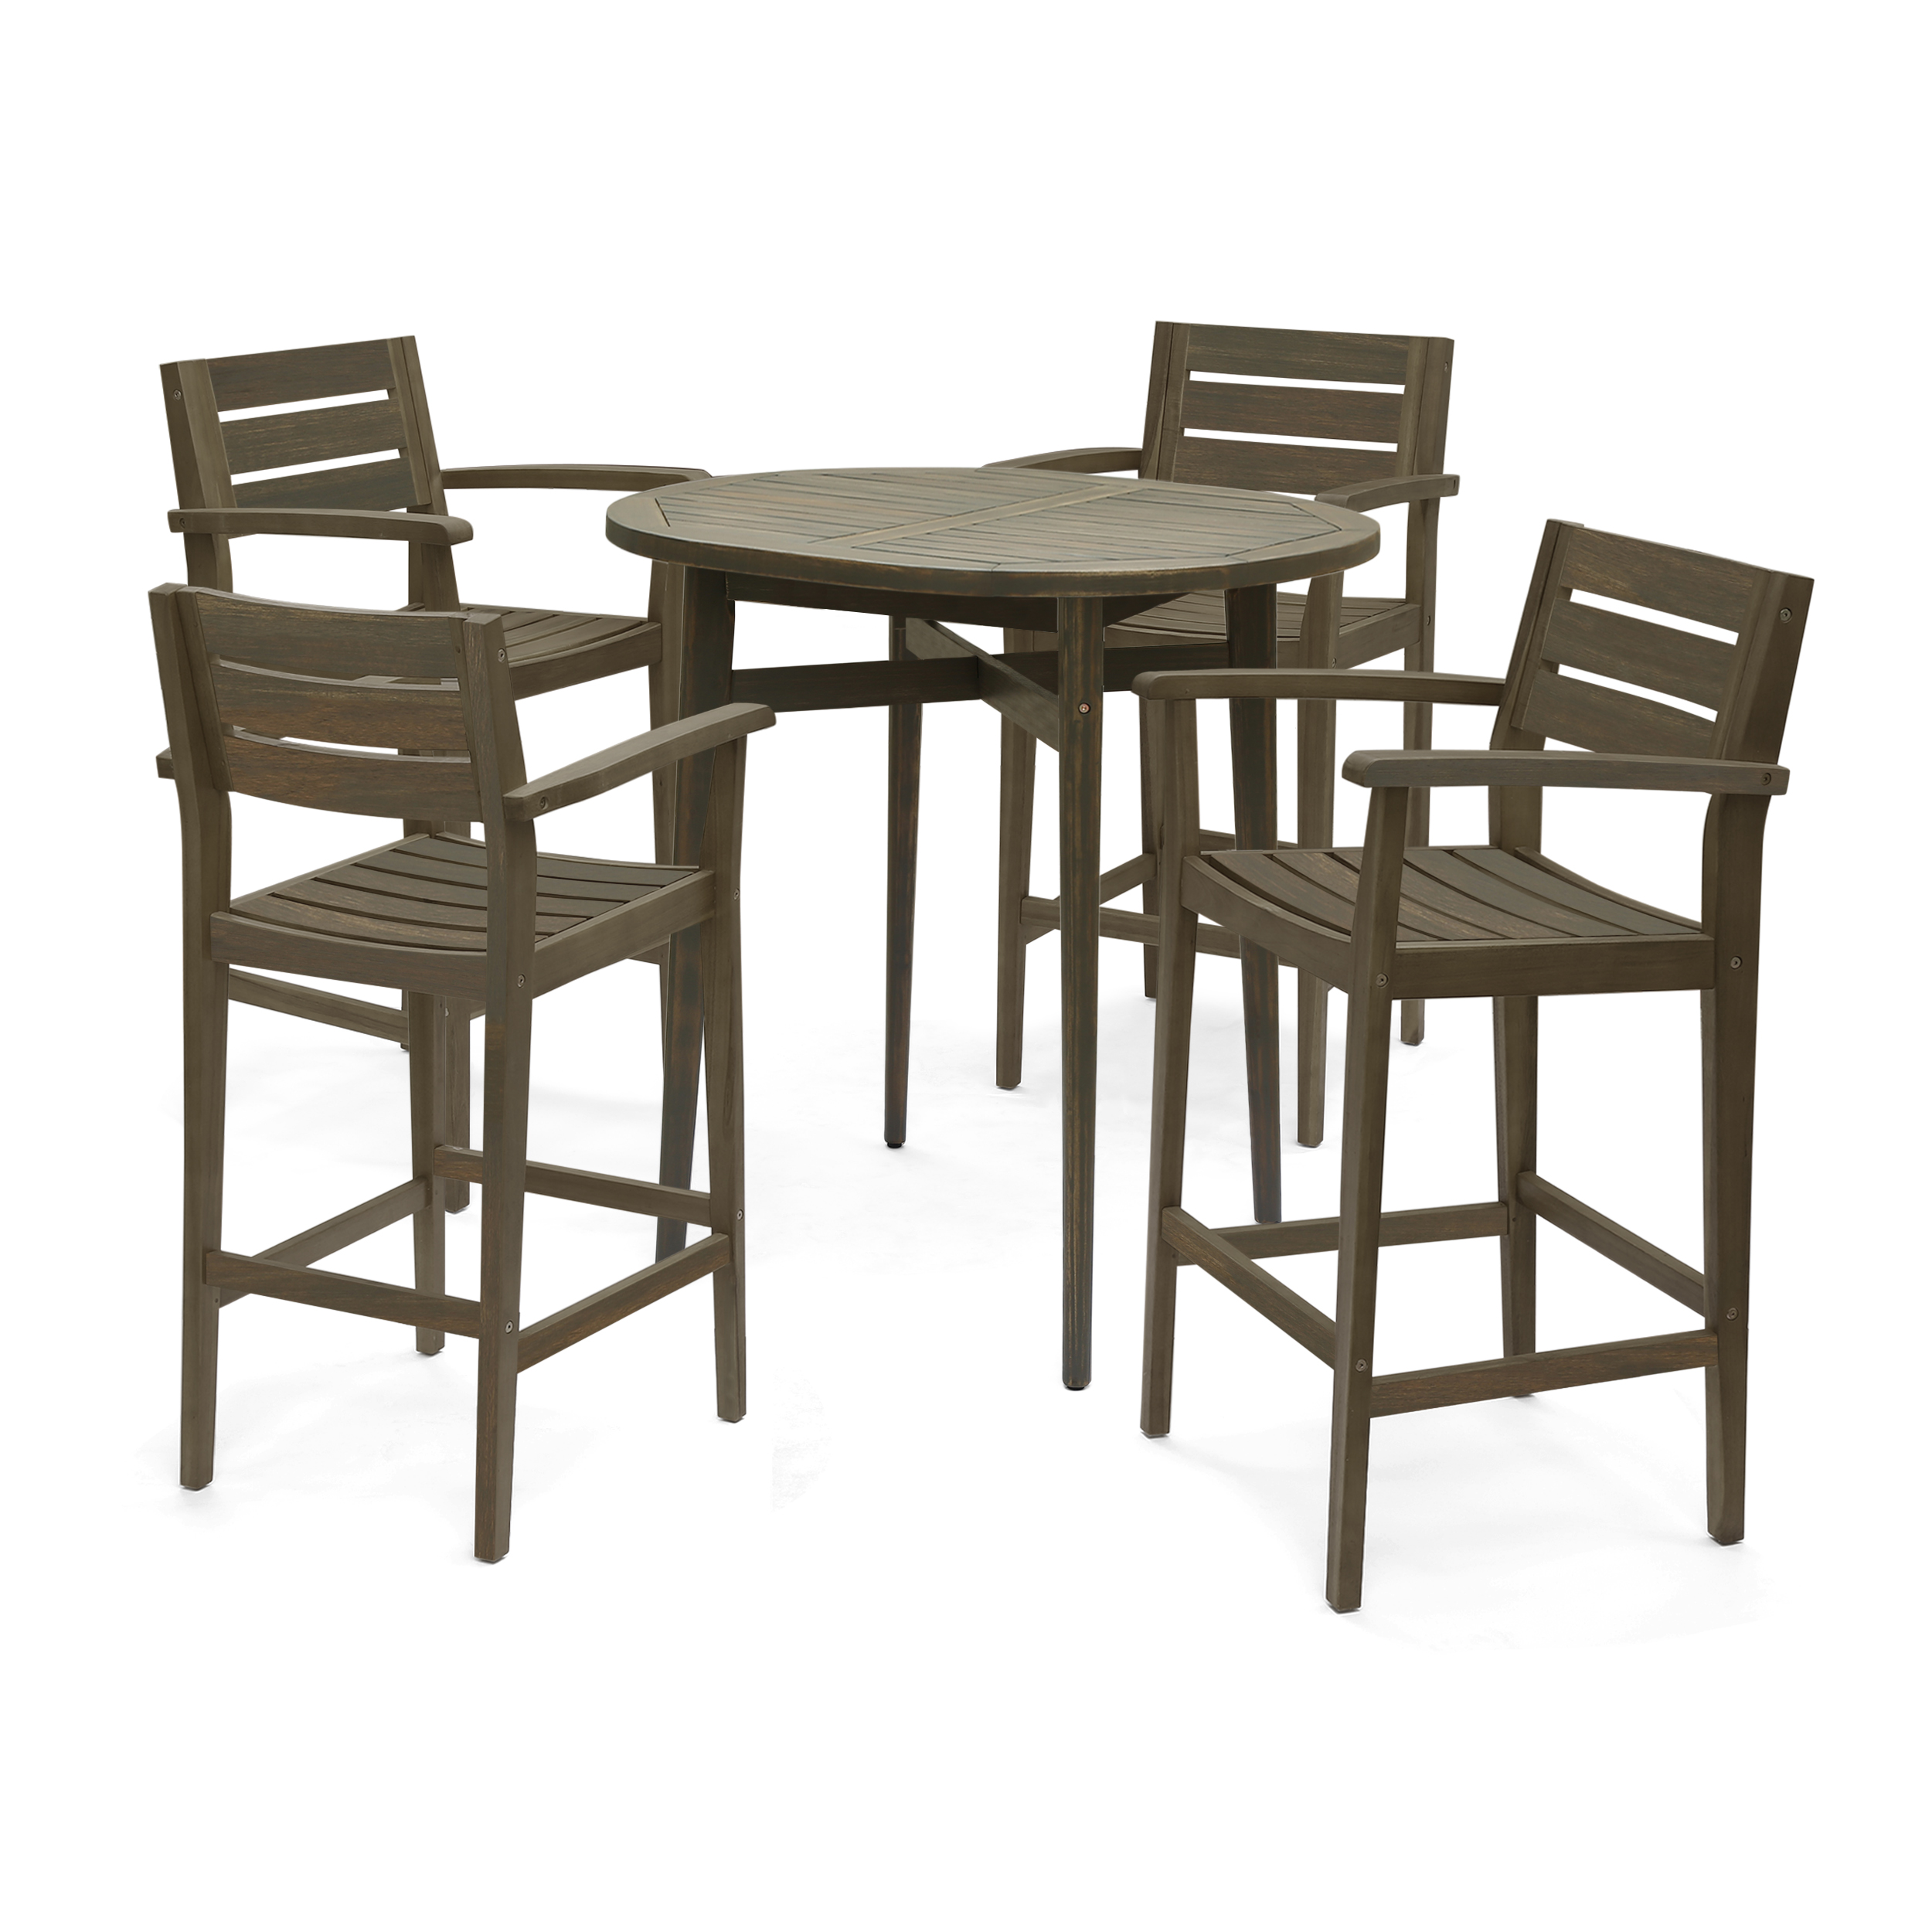 """Stanford Outdoor Solid Acacia Wood Bar Height Table Set, Includes 4 Bar Stools, 30"""" Seats, Gray Finish"""